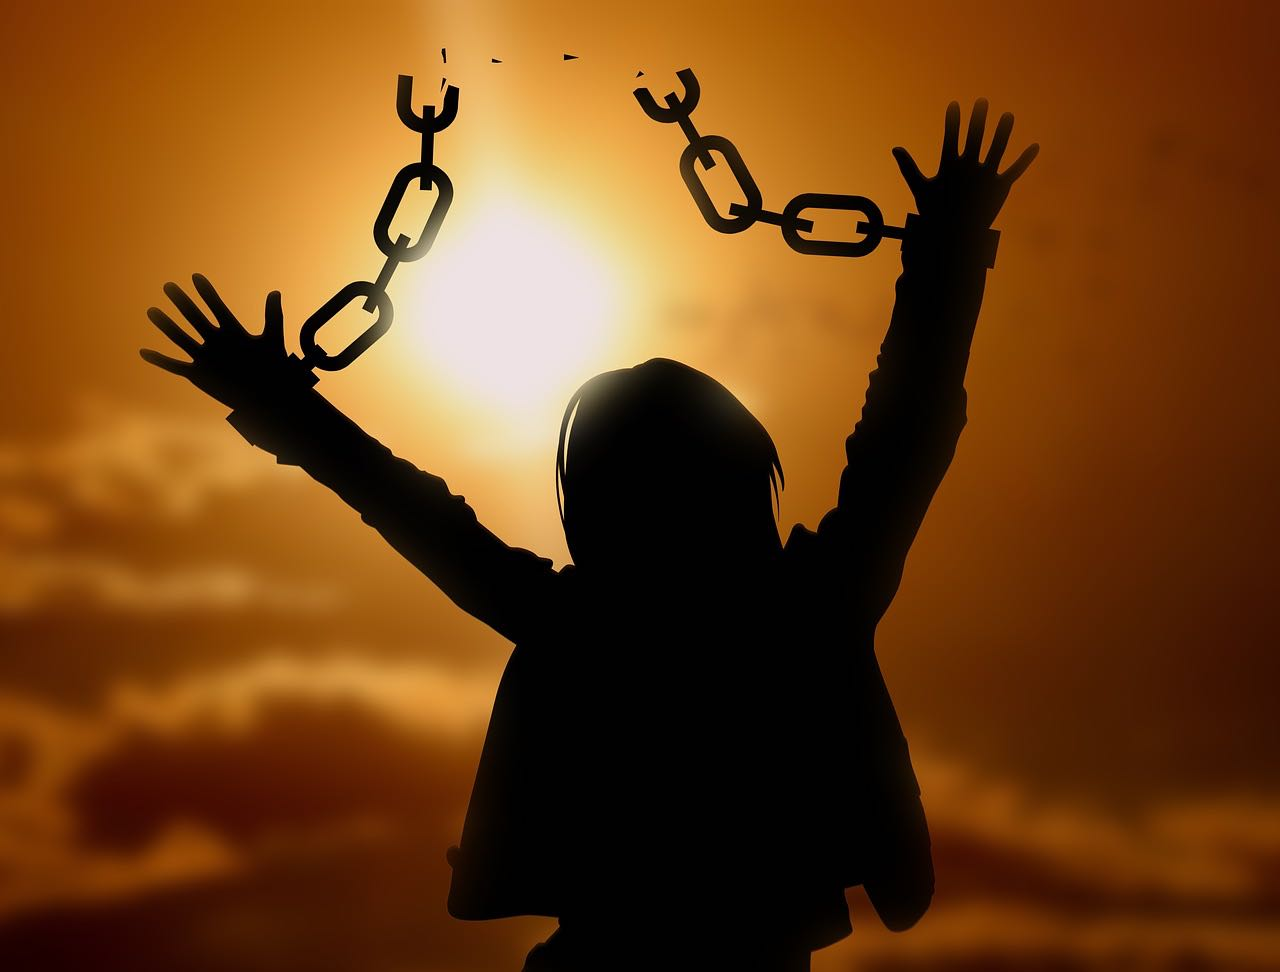 Person breaking free of chains attached to wrists with sunset in background